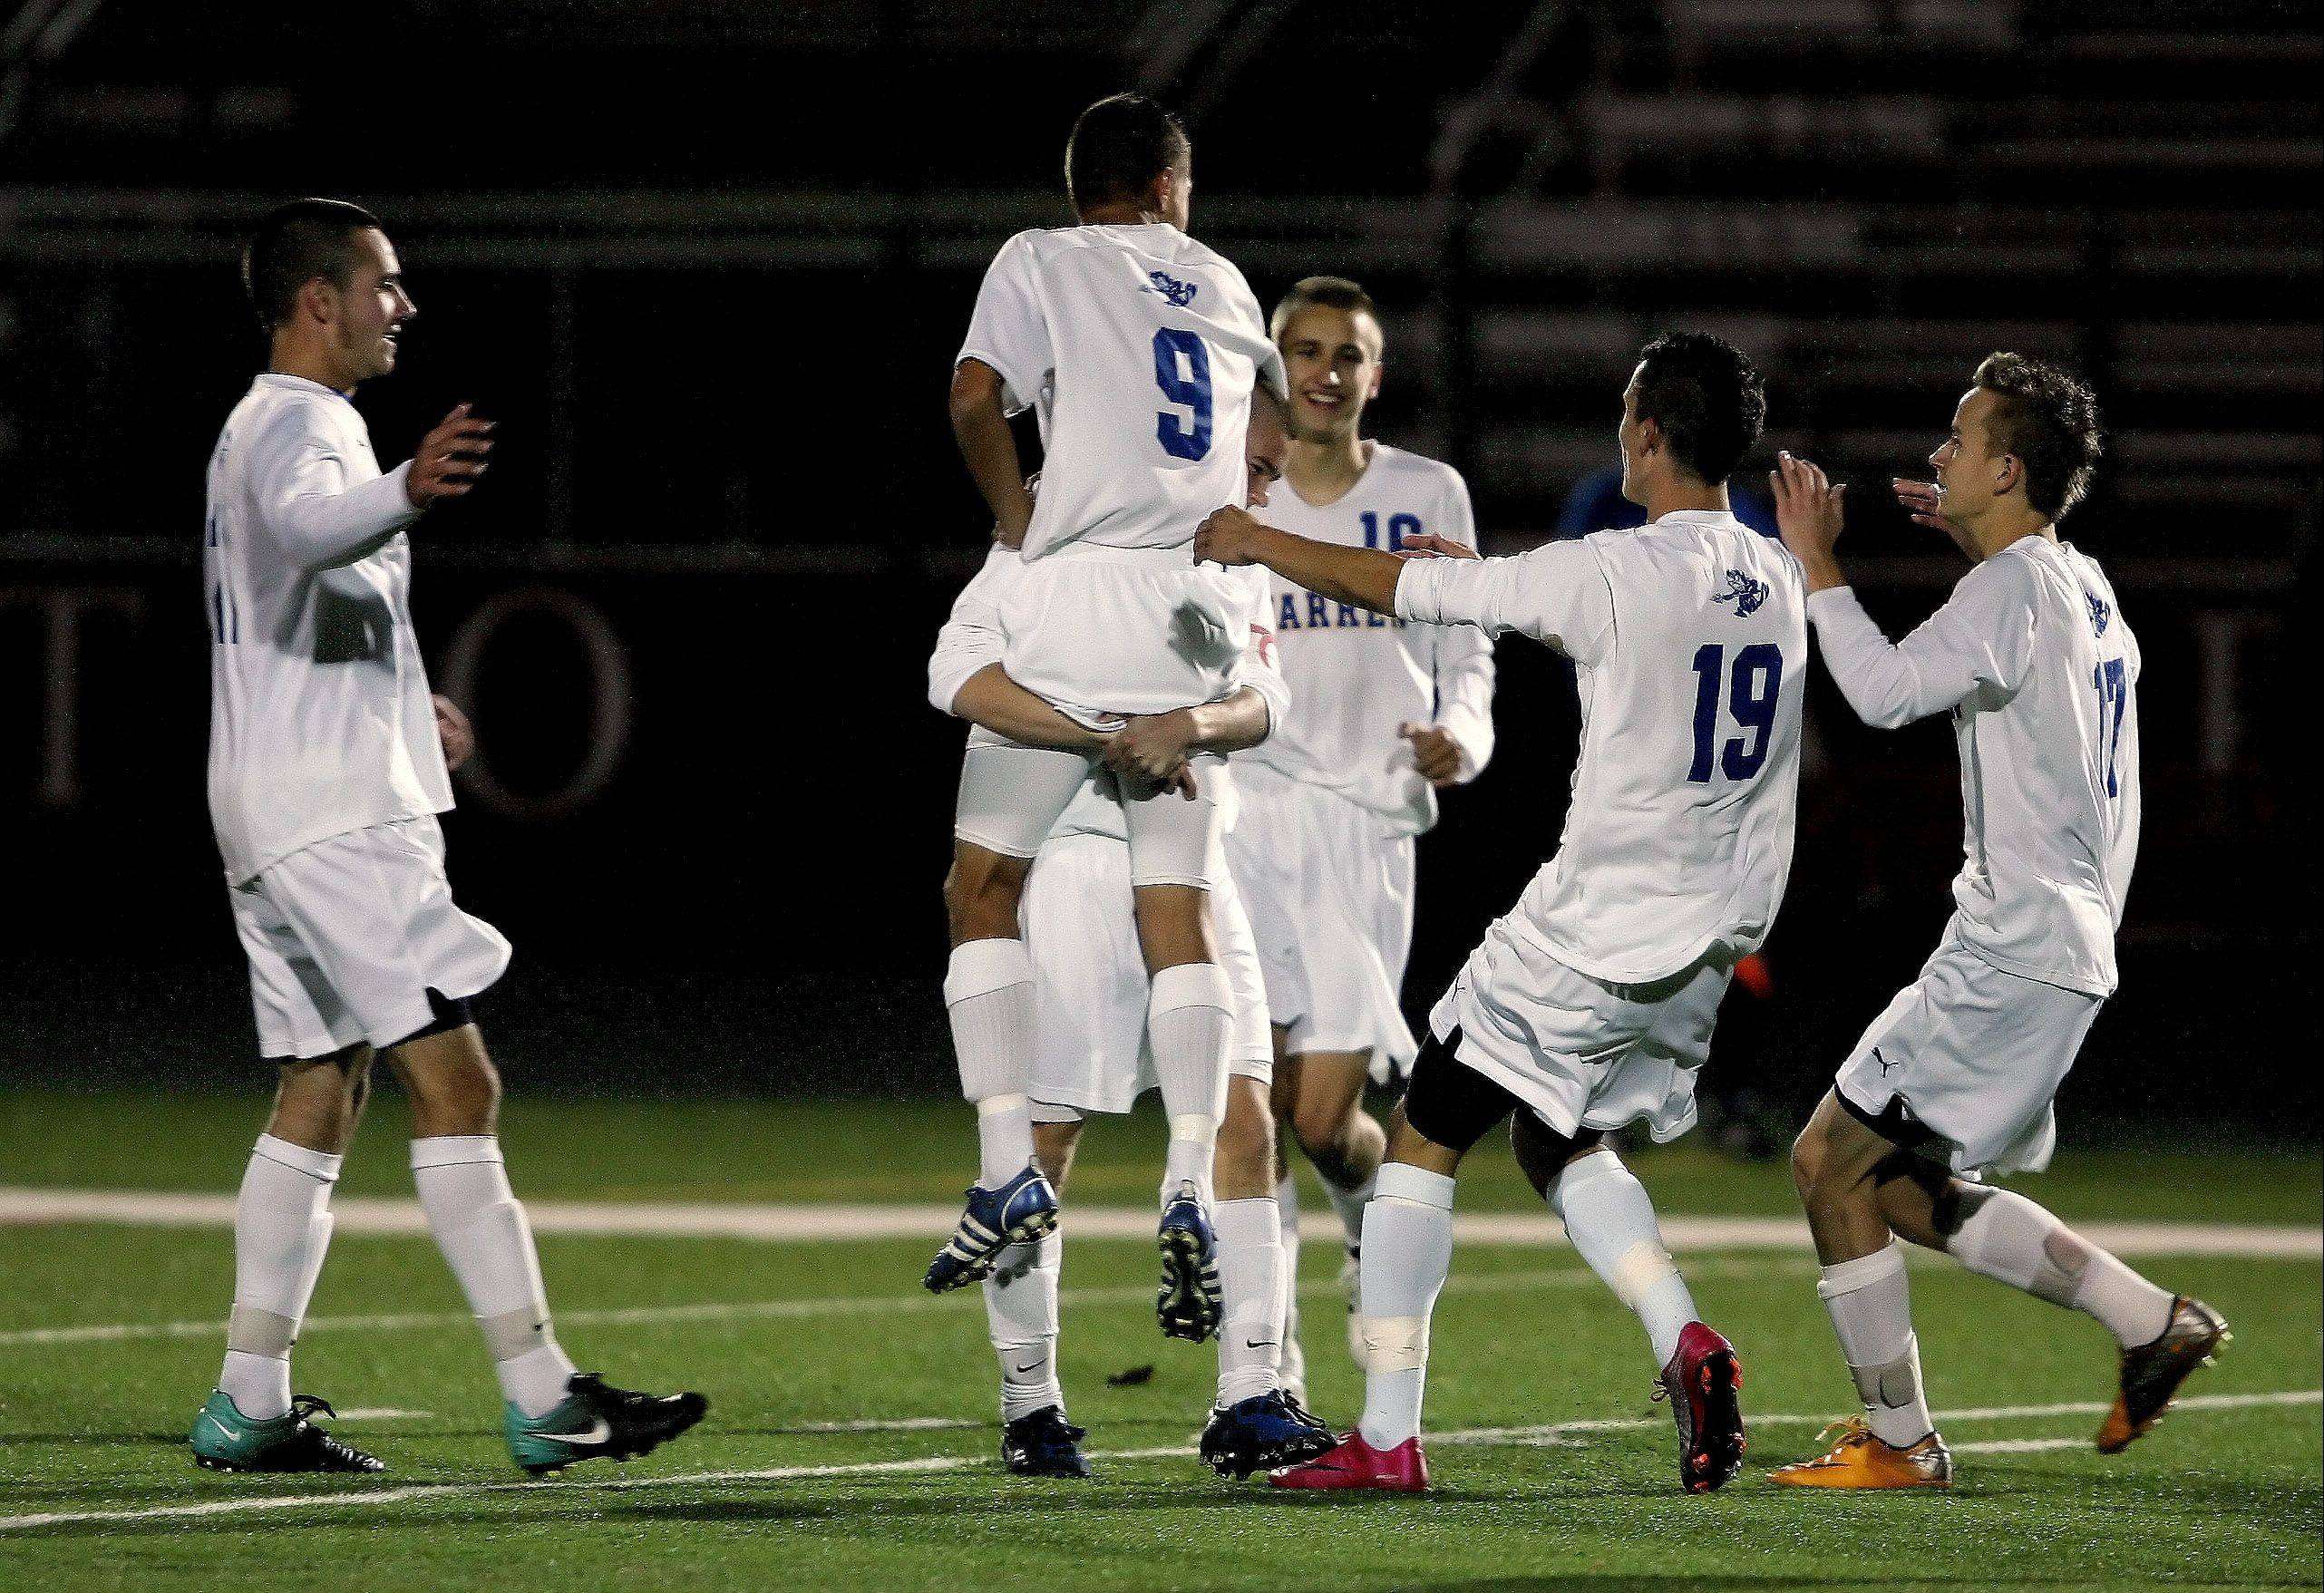 Warren teammates celebrate after Daniel Szczepanek scored during last season's supersectional game against Schaumburg at Barrington. The Blue Devils are one win away from returning to the supersectional round after another standout season from Szczepanek, the Daily Herald's all-area team captain.